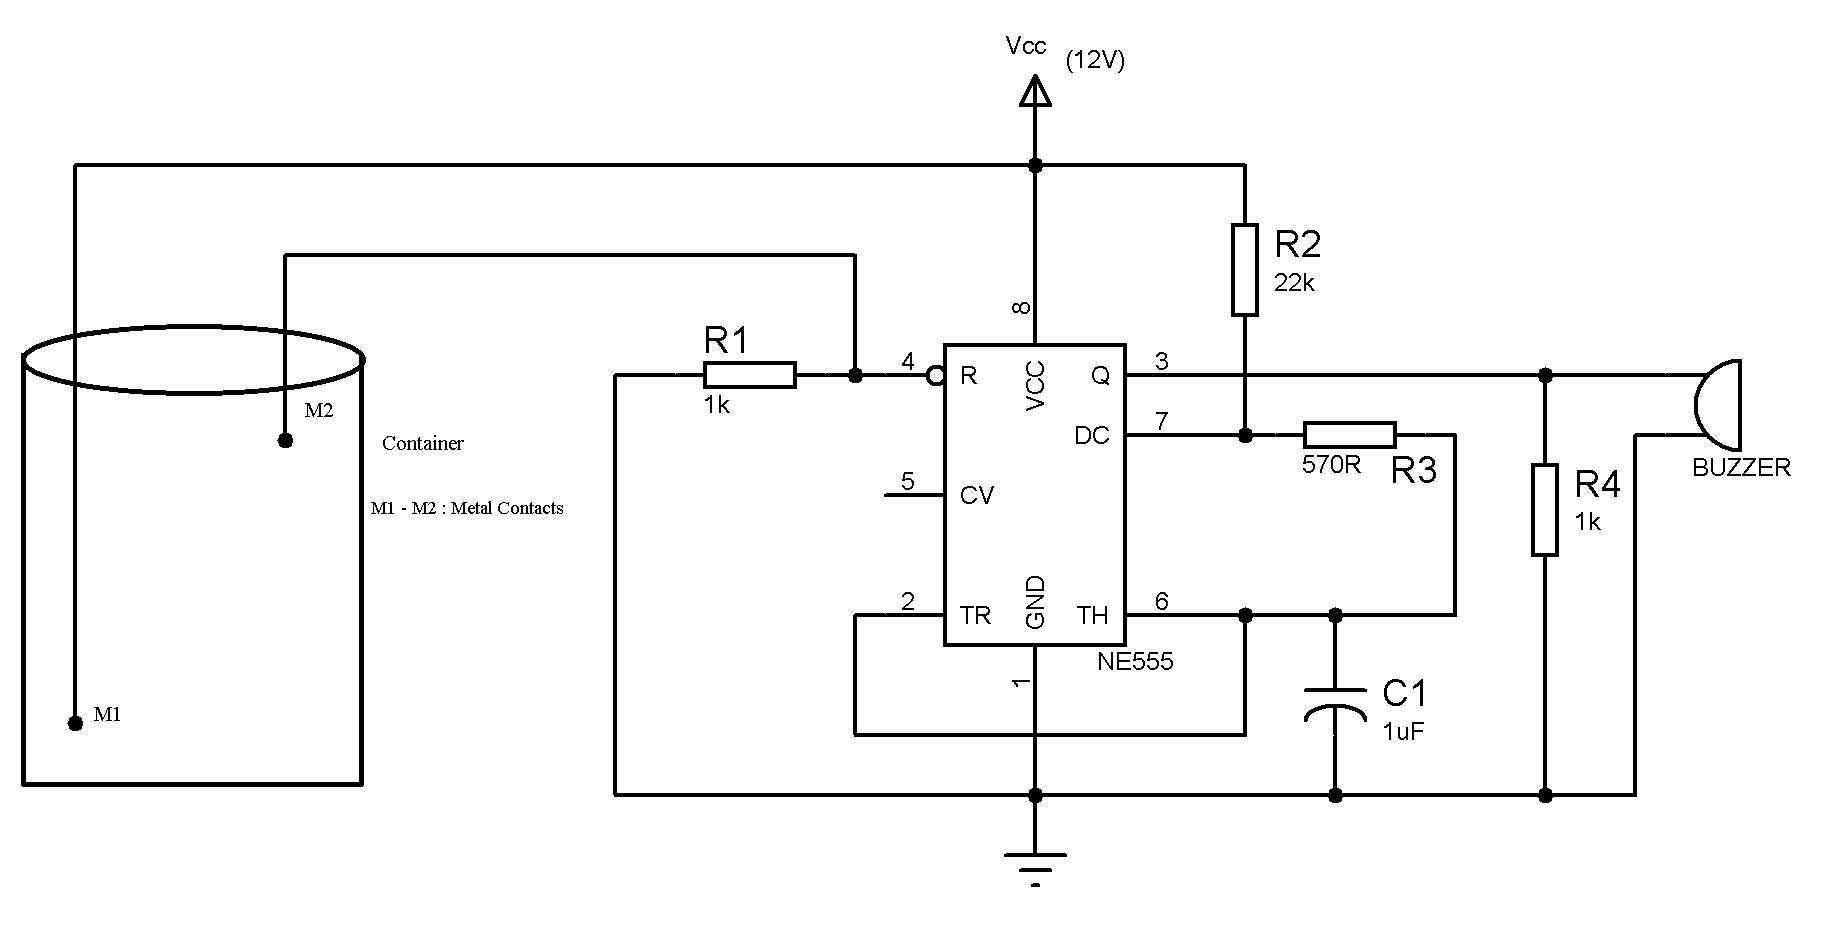 hight resolution of water level sensor circuit diagram wiring diagram blog new water level sensor circuit water level indicator circuit diagram